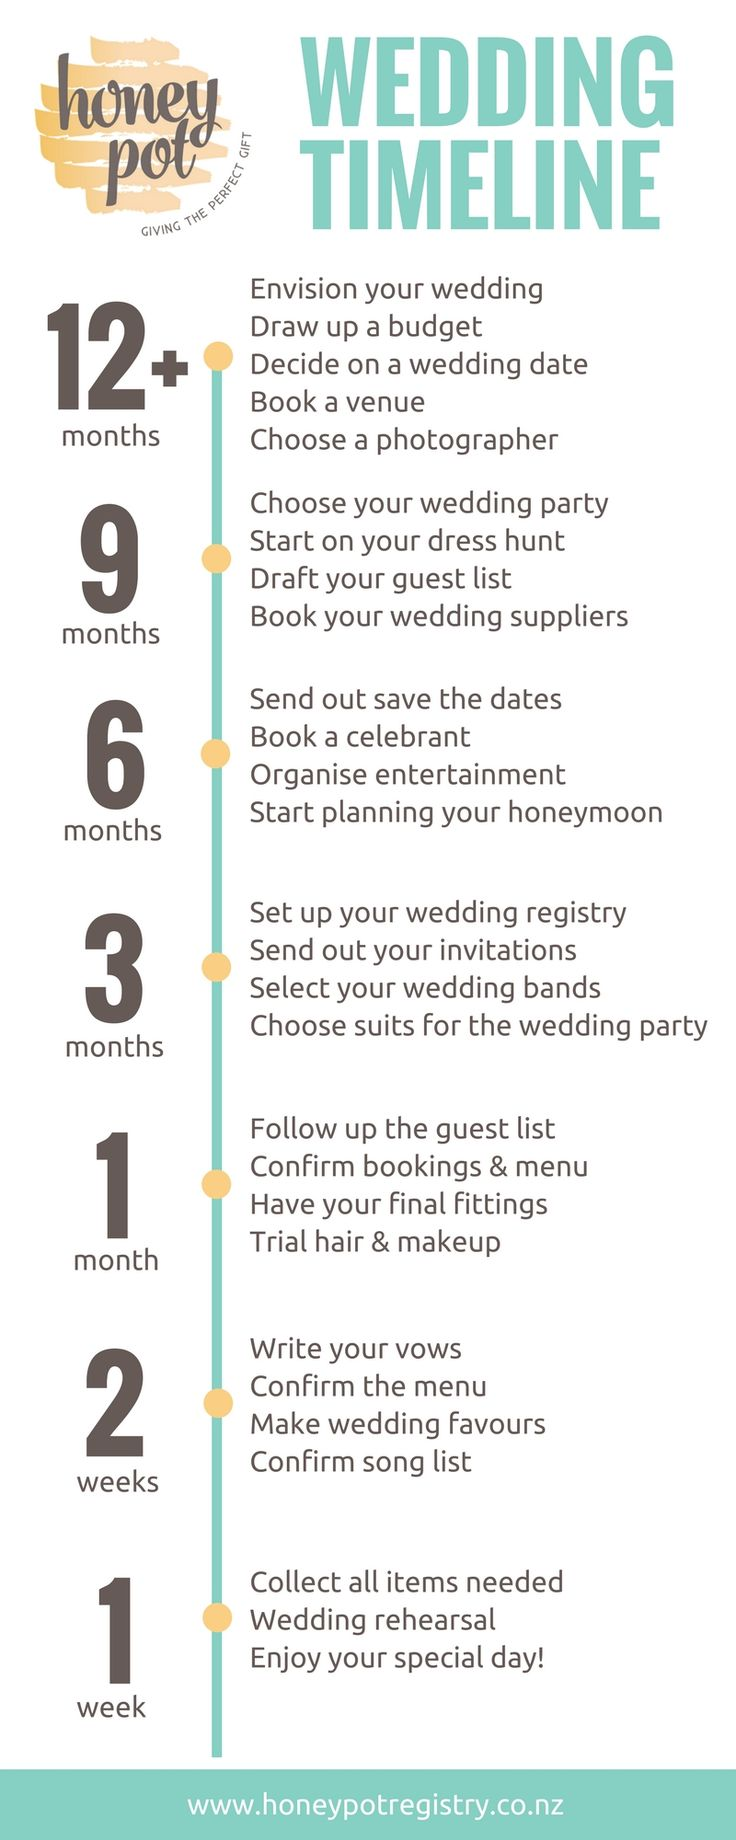 Feeling a bit overwhelmed by wedding planning? Follow our go-to wedding timeline and know when to plan what for your wedding, from booking your venue to buying your wedding dress to sending your invitations to the big day itself!